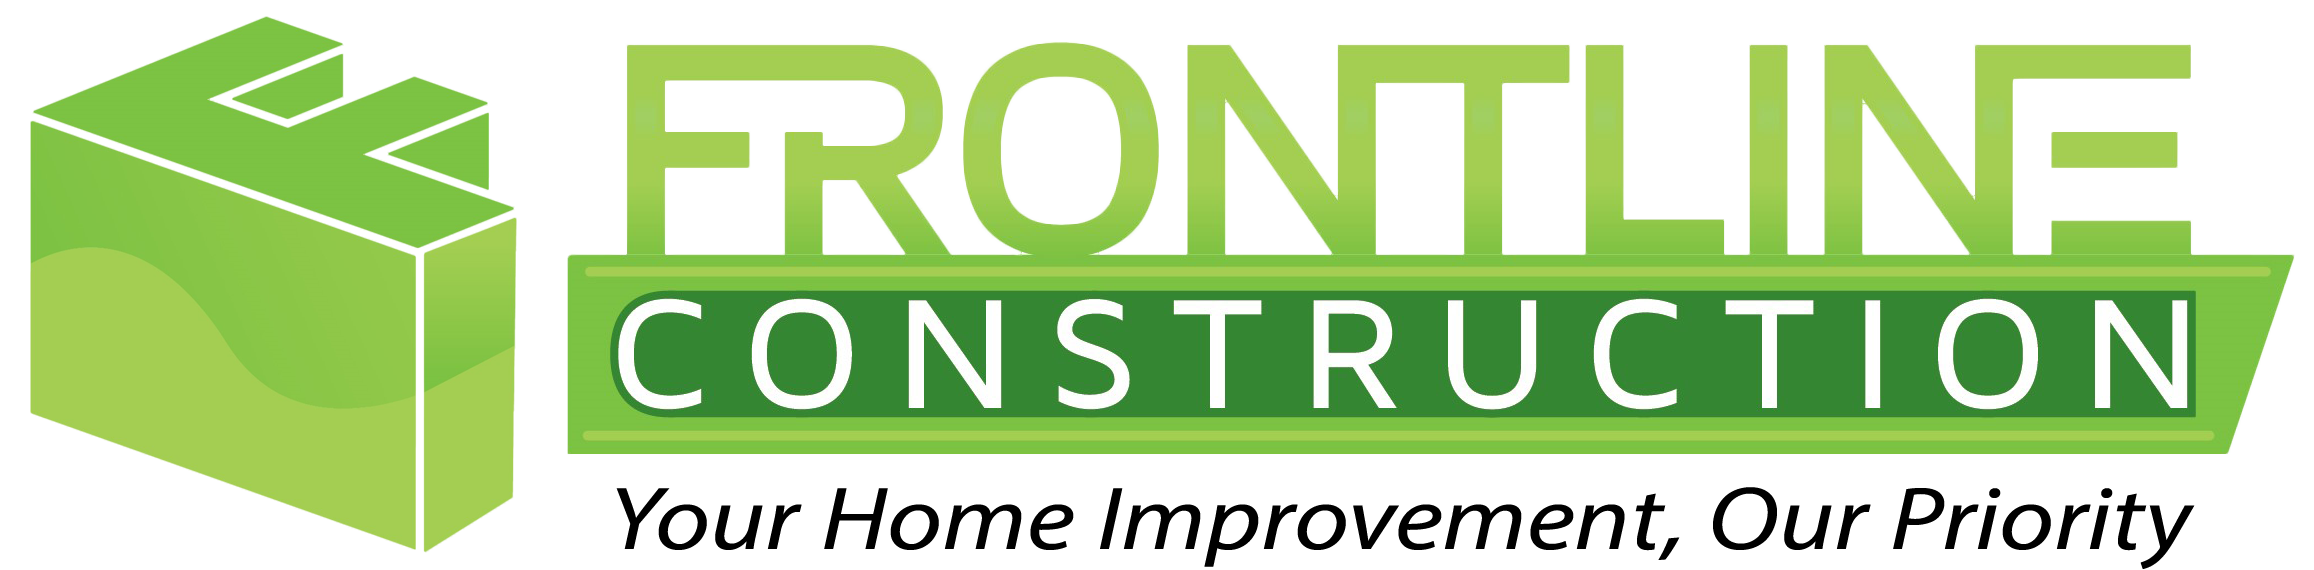 Frontline Construction LLC Logo